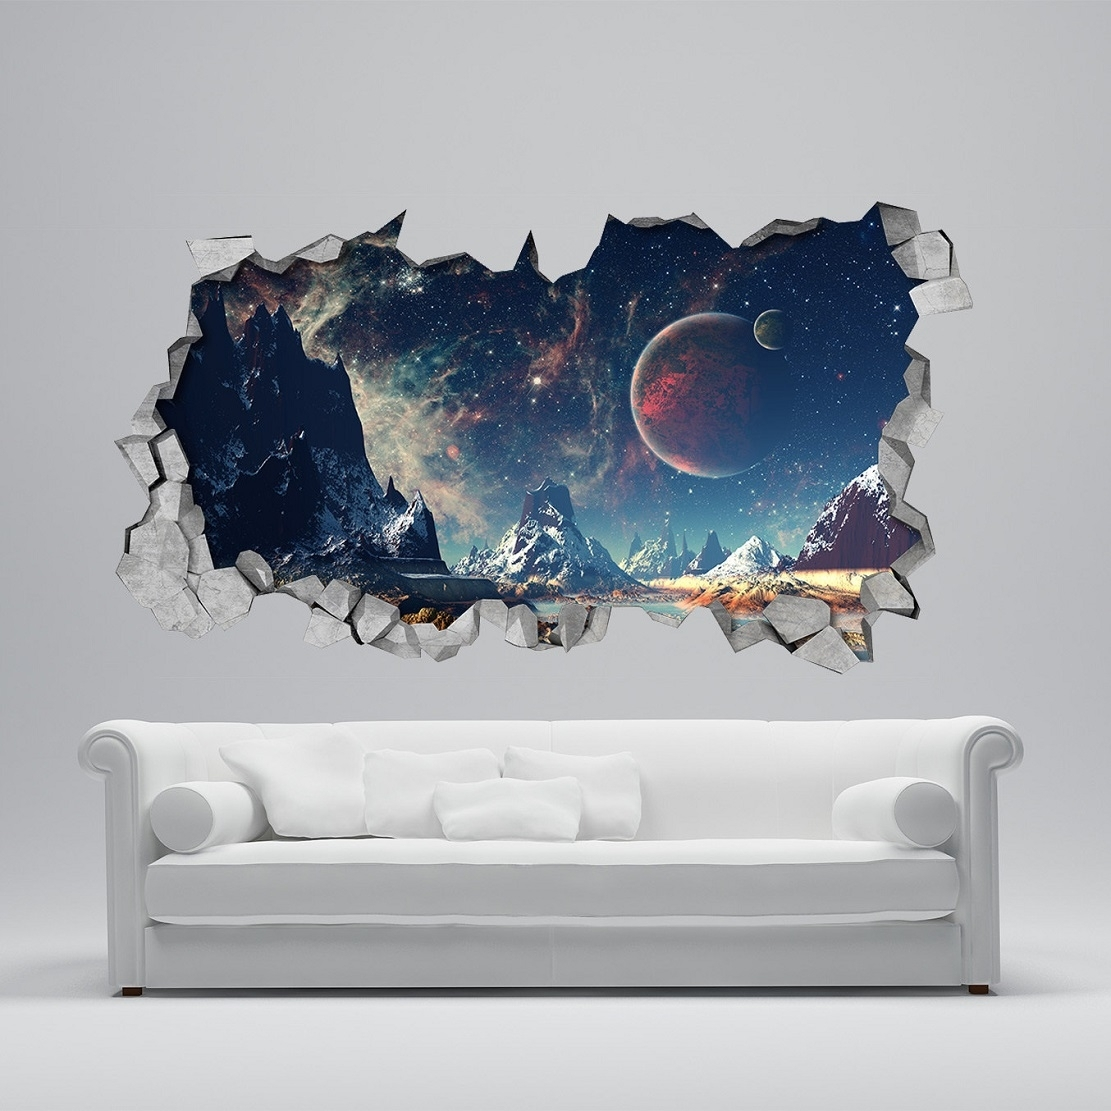 25 Unparalleled 3D Wall Art For Charming Home With Regard To 3D Wall Art (View 2 of 20)